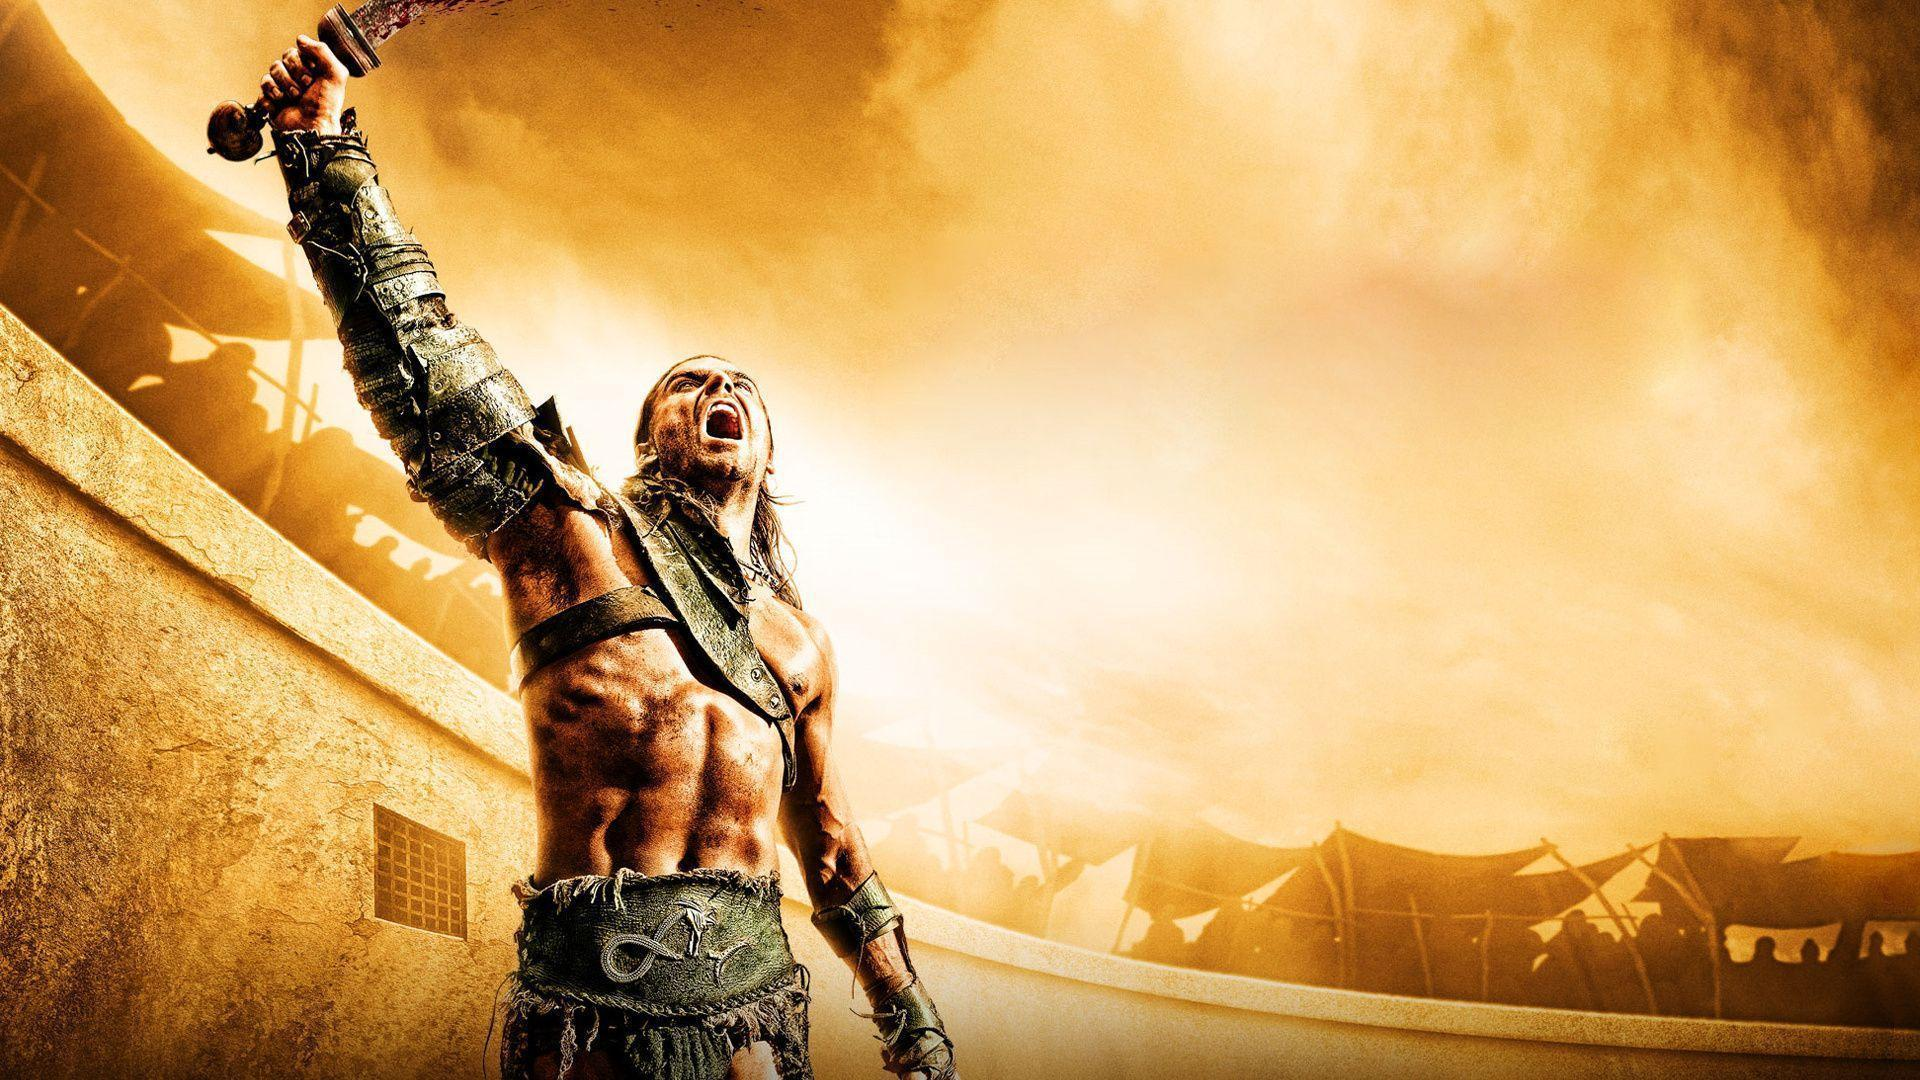 hd wallpaper hercules - Background Wallpapers for your Desktop and ...